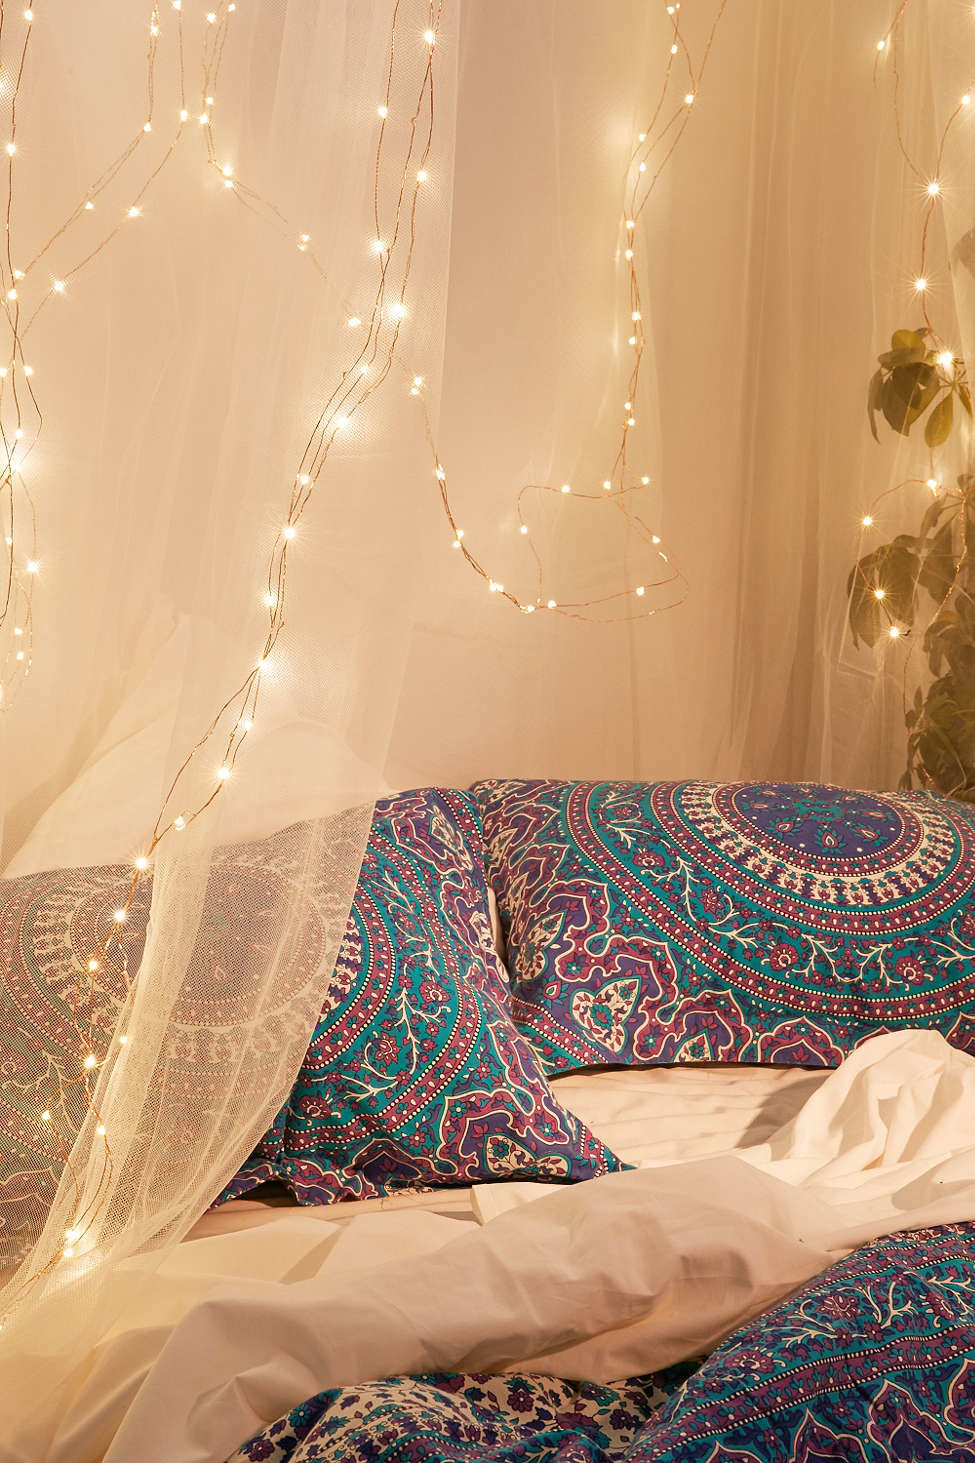 23 Easy Ways To Turn Your Room Into A Cosmic Getaway